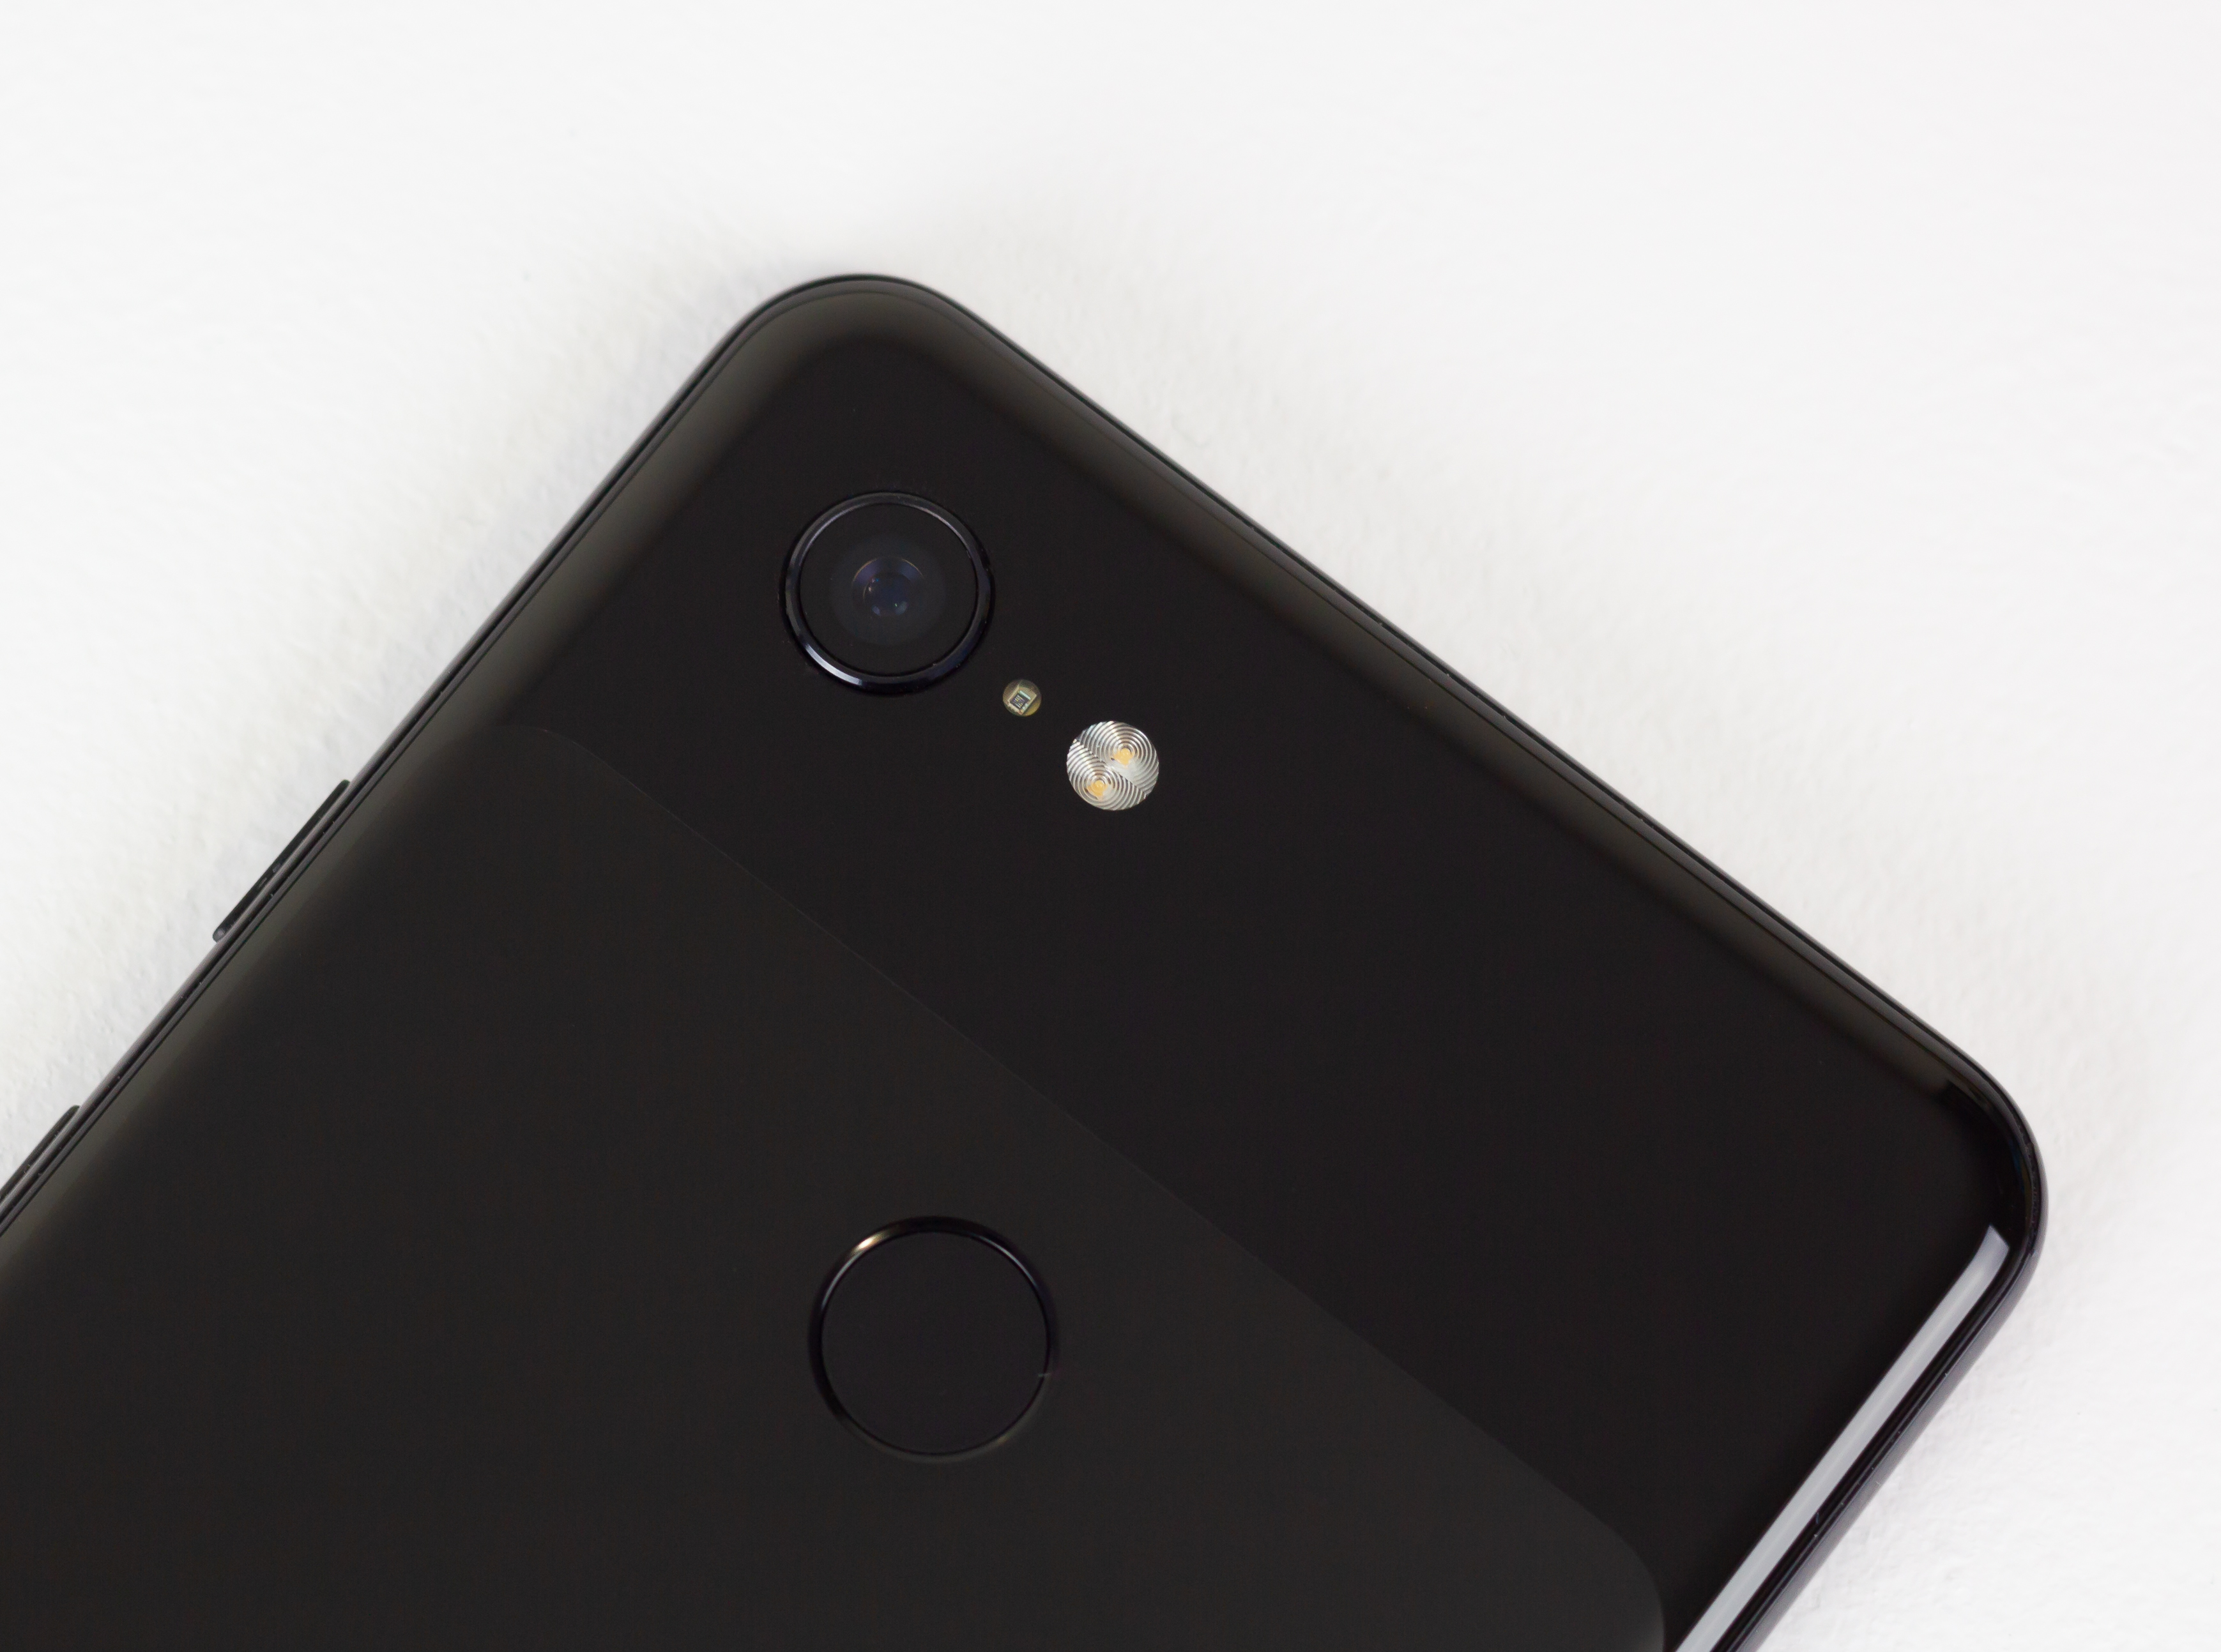 Google Pixel 3 XL review: The best Google phone you'll never buy